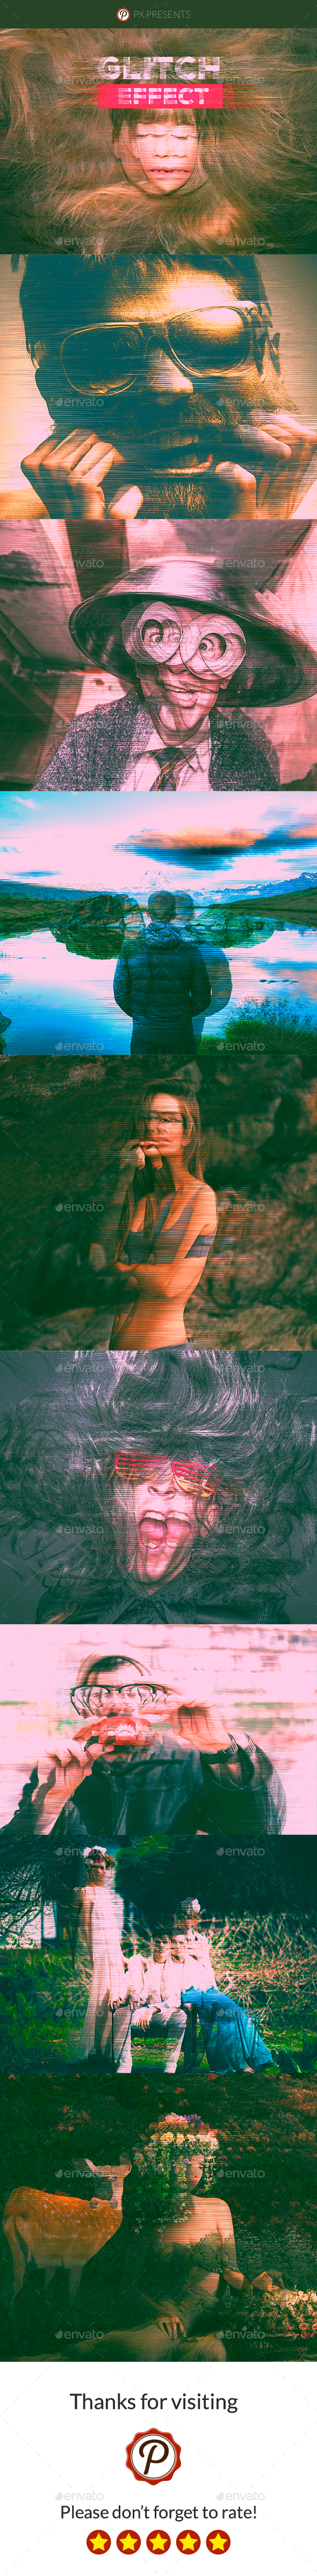 GraphicRiver Pro Glitch Effect Photo Template 20661188